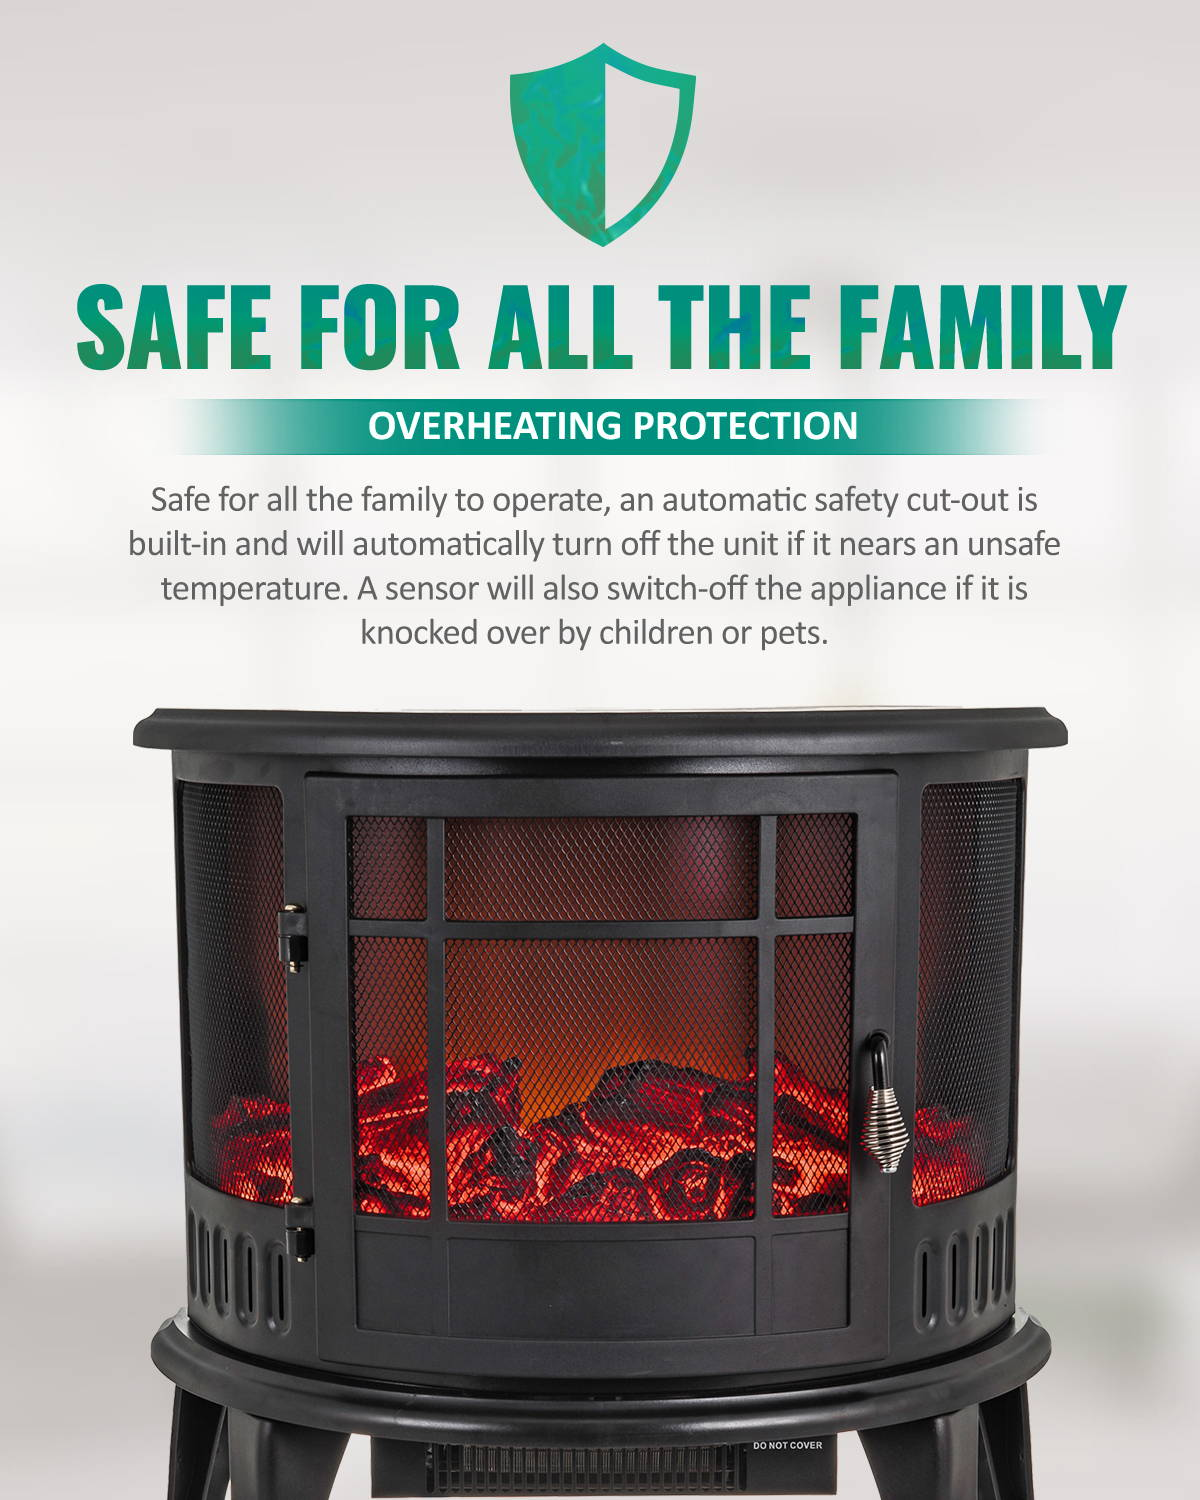 Safe for all the family